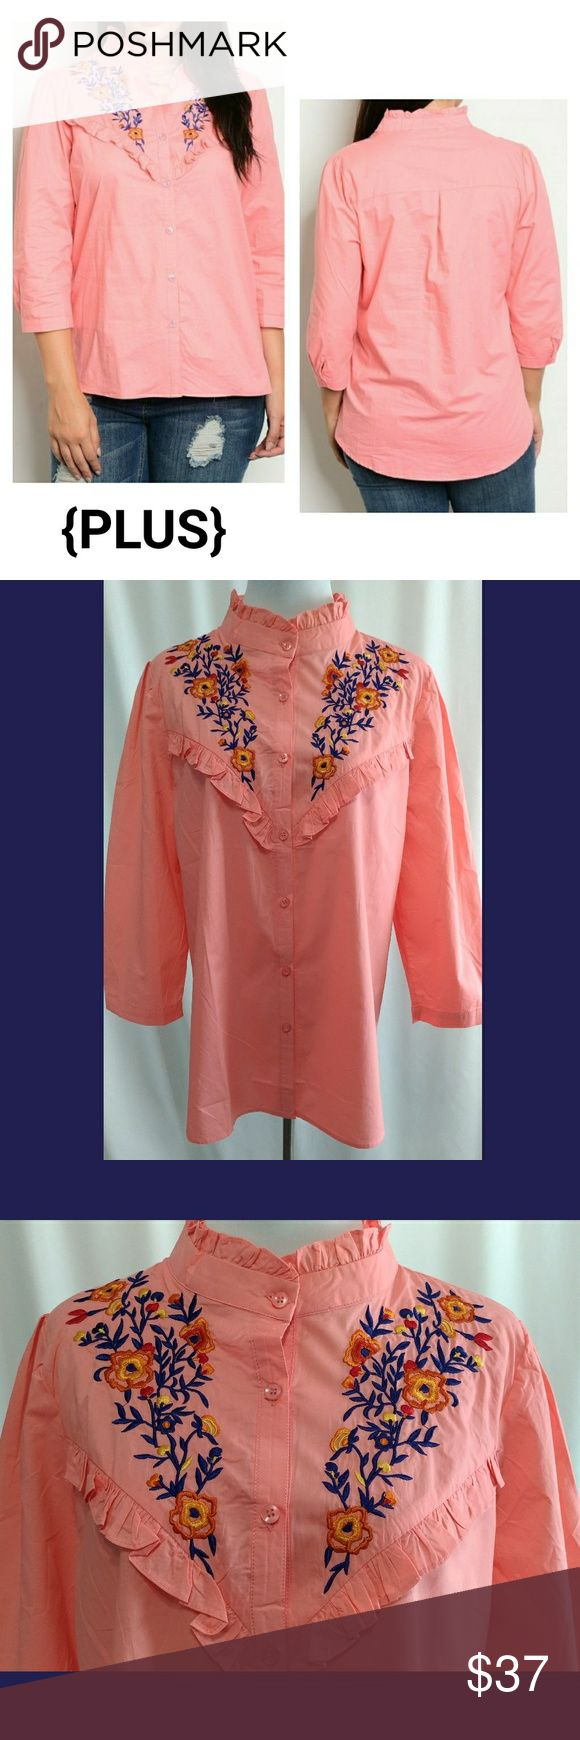 """{JUST IN} Coral Floral Embroidered Blouse ● Button-up to the neck ● 3/4 sleeves ● Floral embroidered chest ● Ruffle trim details at check and neckline ● High neck ● Peachy-pink ● 100% Cotton ● Hand wash ● New without tags  Length: 29.5-30.5""""  Pit to pit: XL: 22"""" 2XL: 23"""" 3XL: 24""""  Waist: XL: 44"""" 2XL: 46"""" 3XL: 48""""  Spring Summer Easter Sunday church warm weather casual dressy office wear date night beach vacation flowers ruffles country festival party brunch Tops Button Down Shirts"""